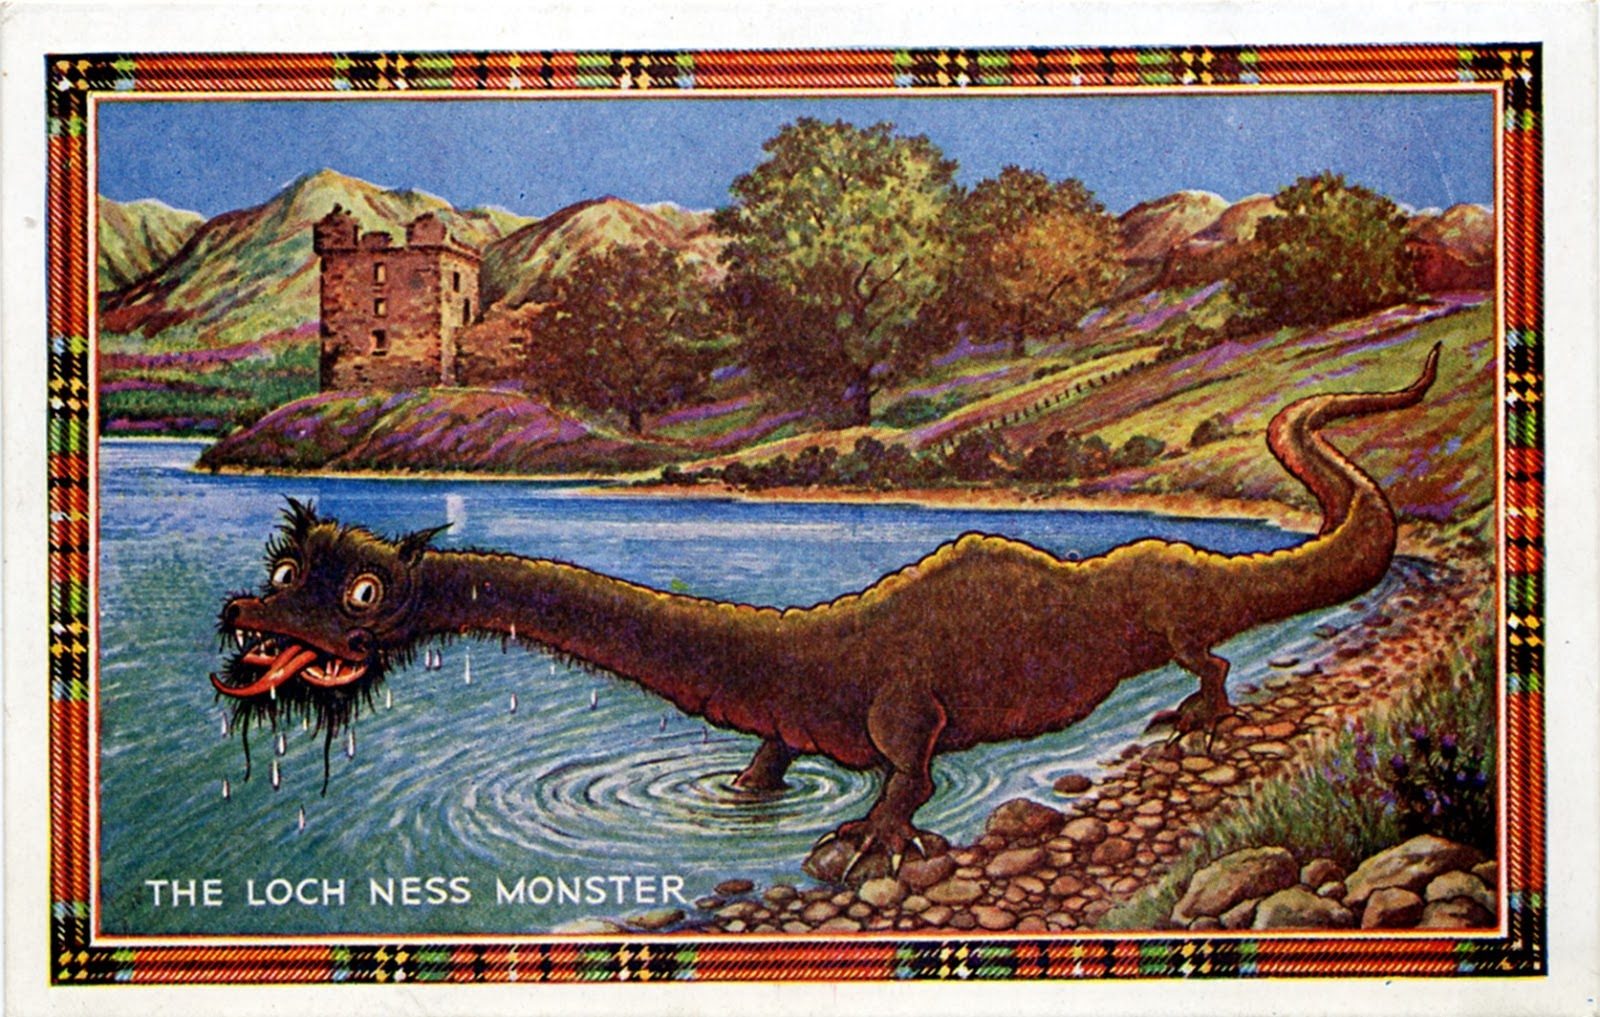 loch ness jewish singles Maybe this is the solid proof of the loch ness monster that nessie-believers have awaited for years maybe it's a bunch of seals maybe we all just need a strong drink whiskey warehouse worker .